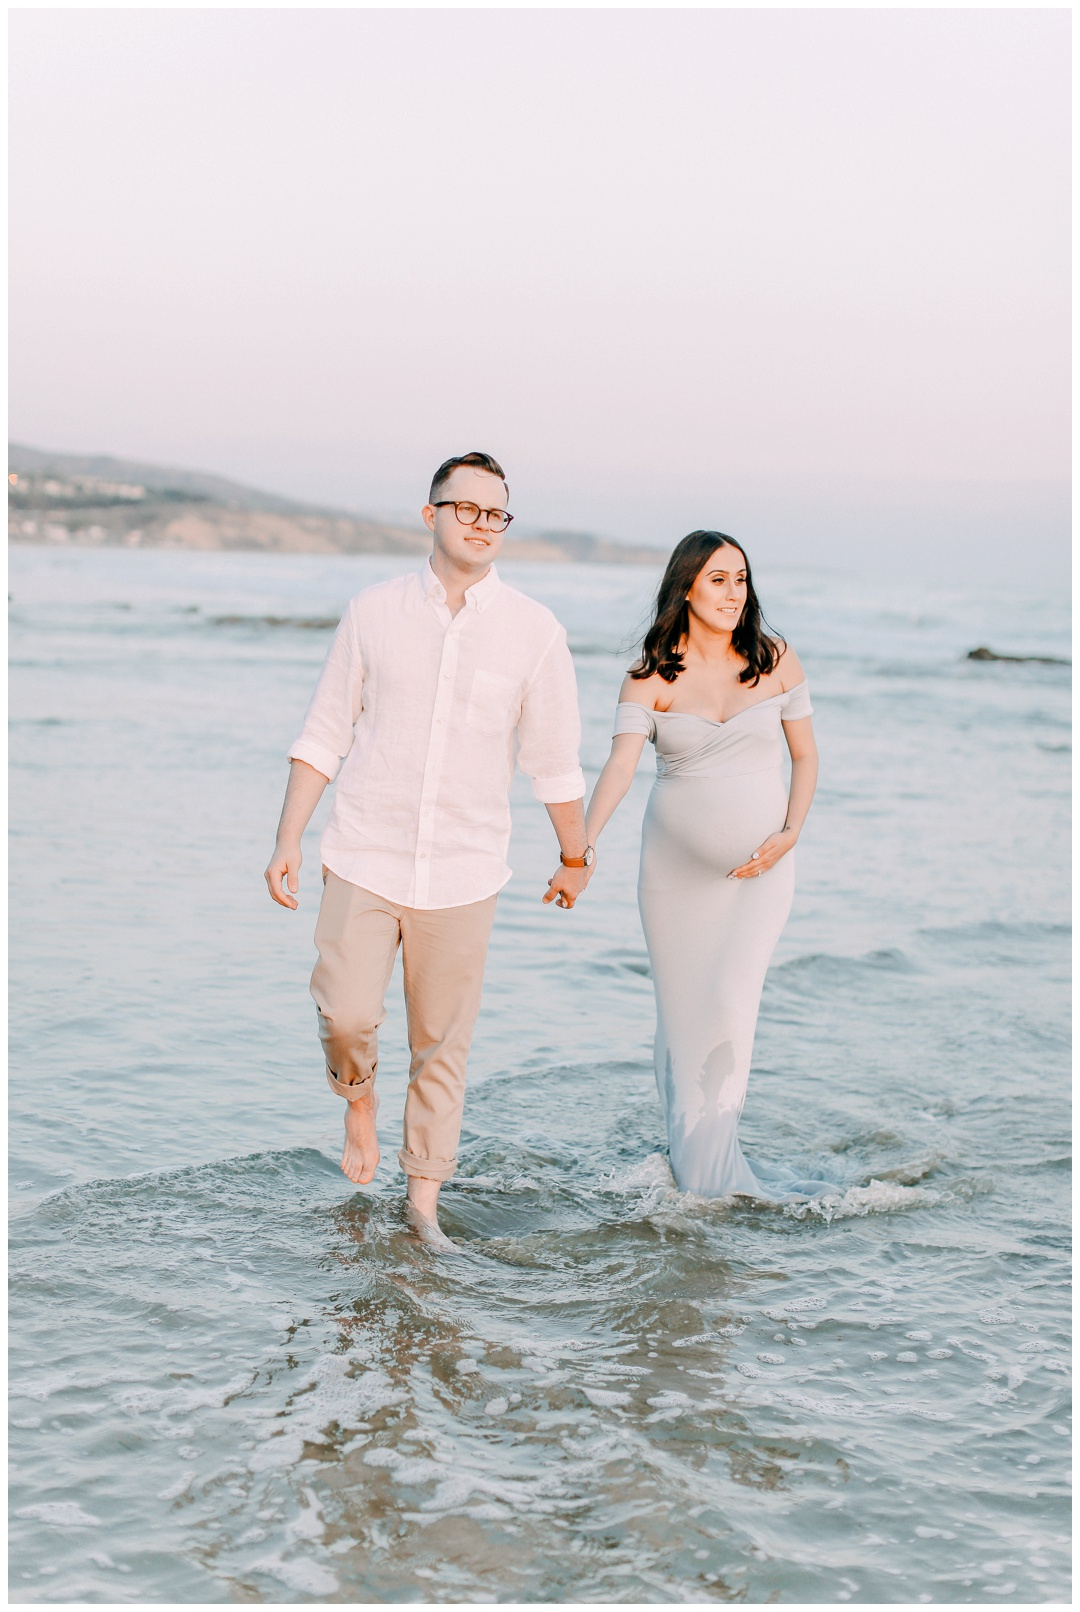 Newport_Beach_Maternity_Photographer_The_Merrill_Maternity_Session_Newport_Beach_Maternity_Photography_Orange_County_Photography_Cori_Kleckner_Photography_Orange_County_Beach_Photography_The_Ritz_Carlton_Laguna_Niguel_Resort_ Maternity_Session__1785.jpg